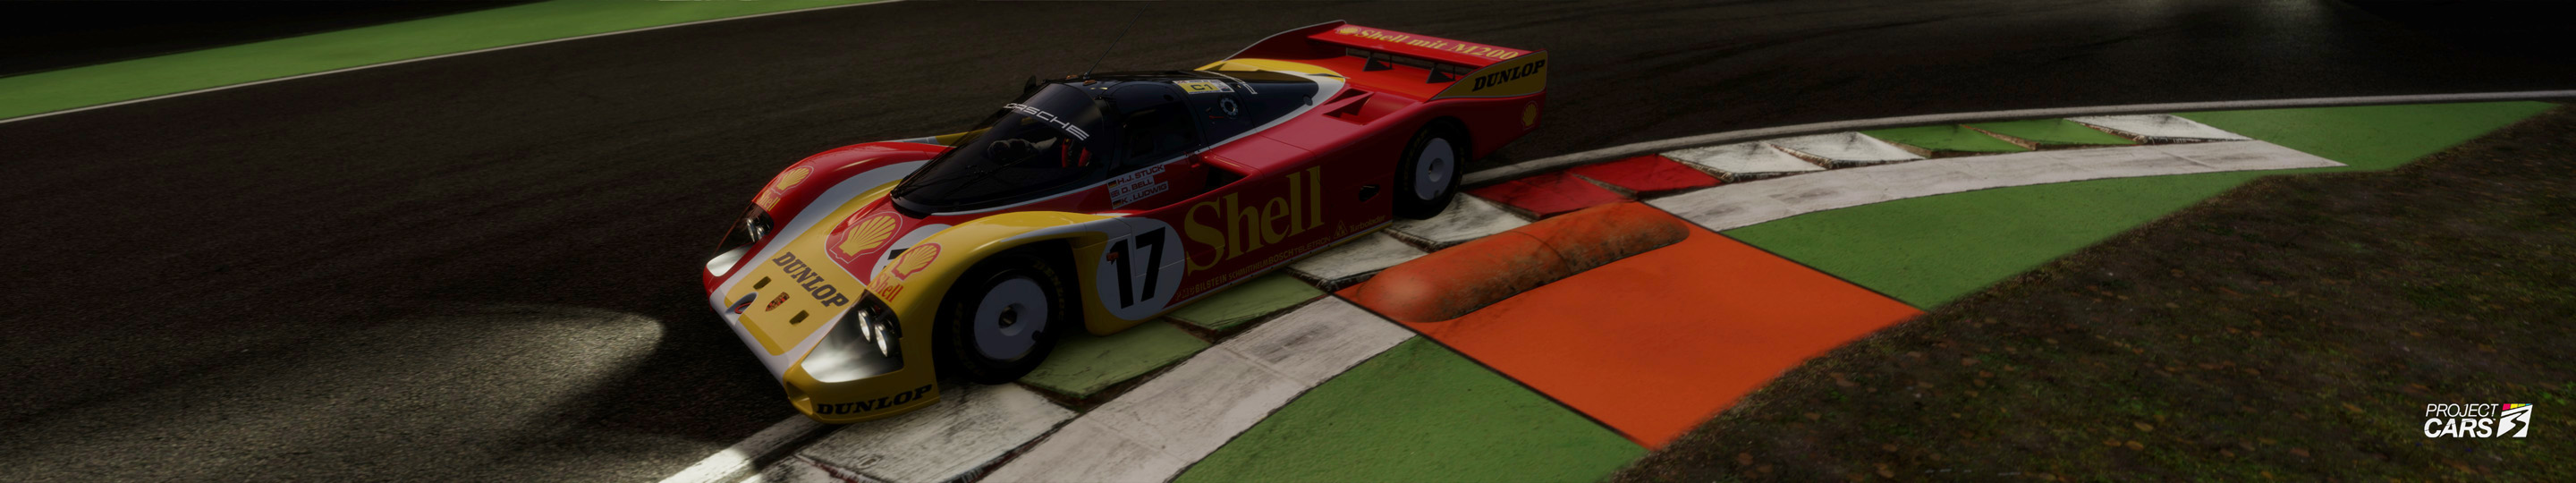 4 PROJECT CARS GROUP C at MONZA copy.jpg